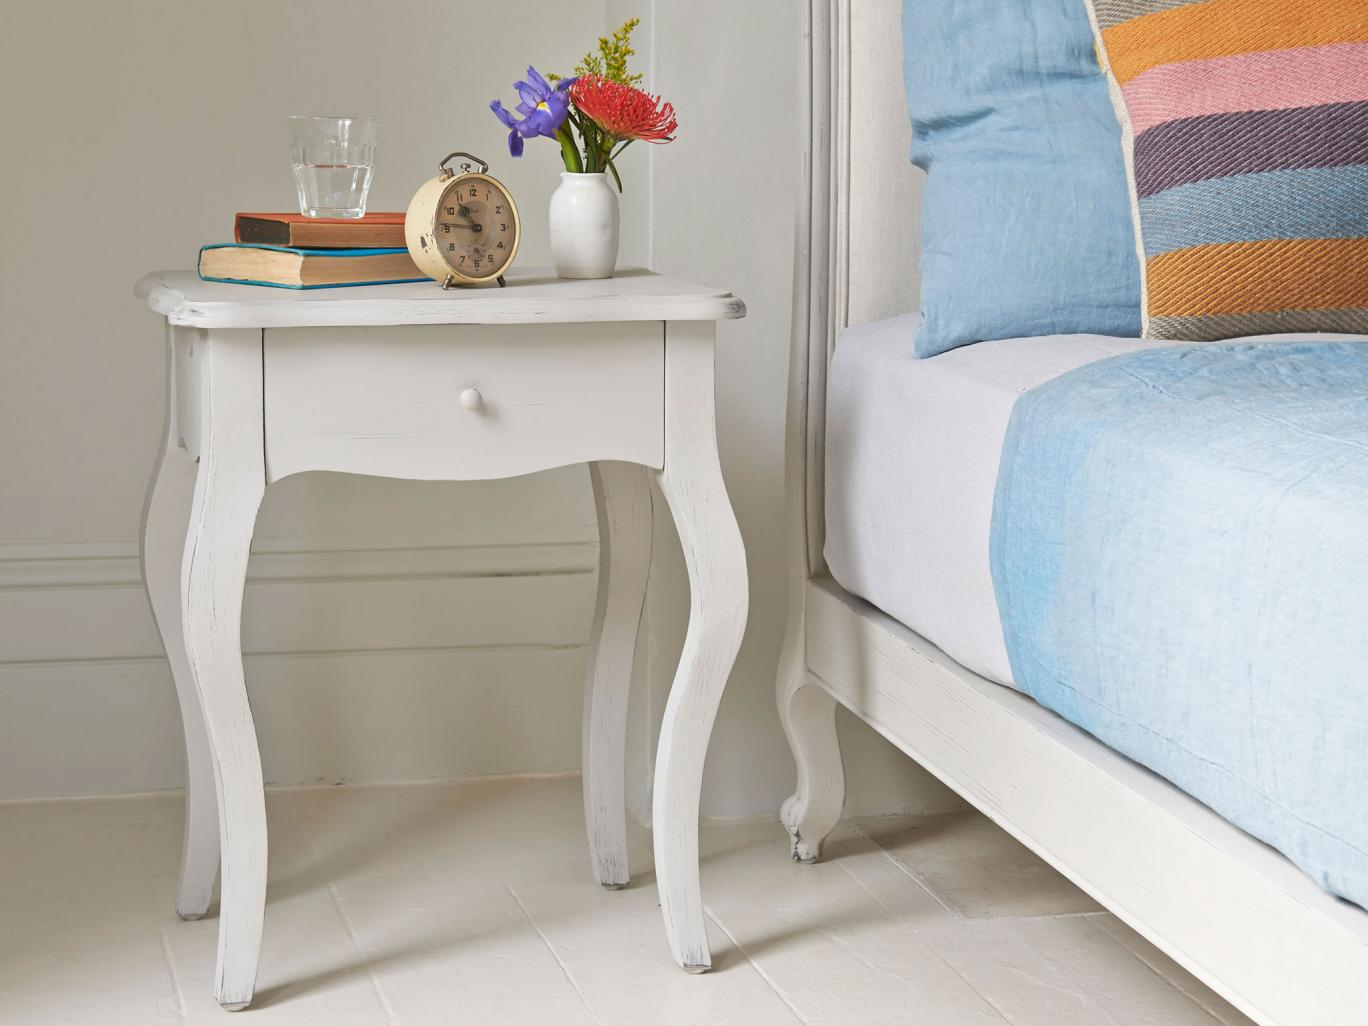 Trendy Bedside Tables | Designer Nightstands | Modern Bedside Tables